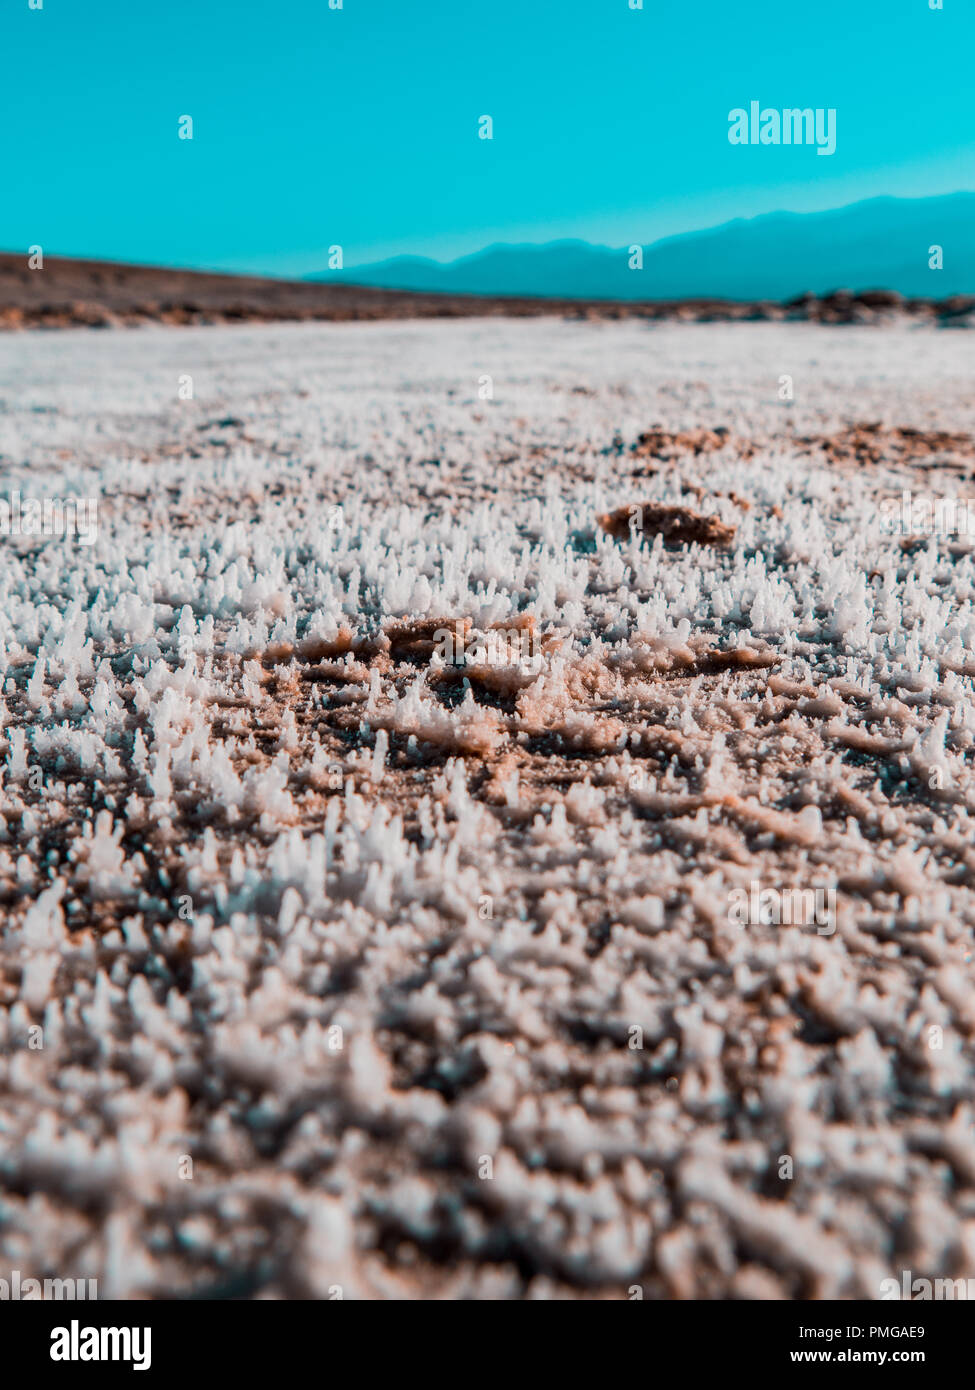 Salt is heaping up from the soil on a sunny day in the hart of dead valley - Stock Image